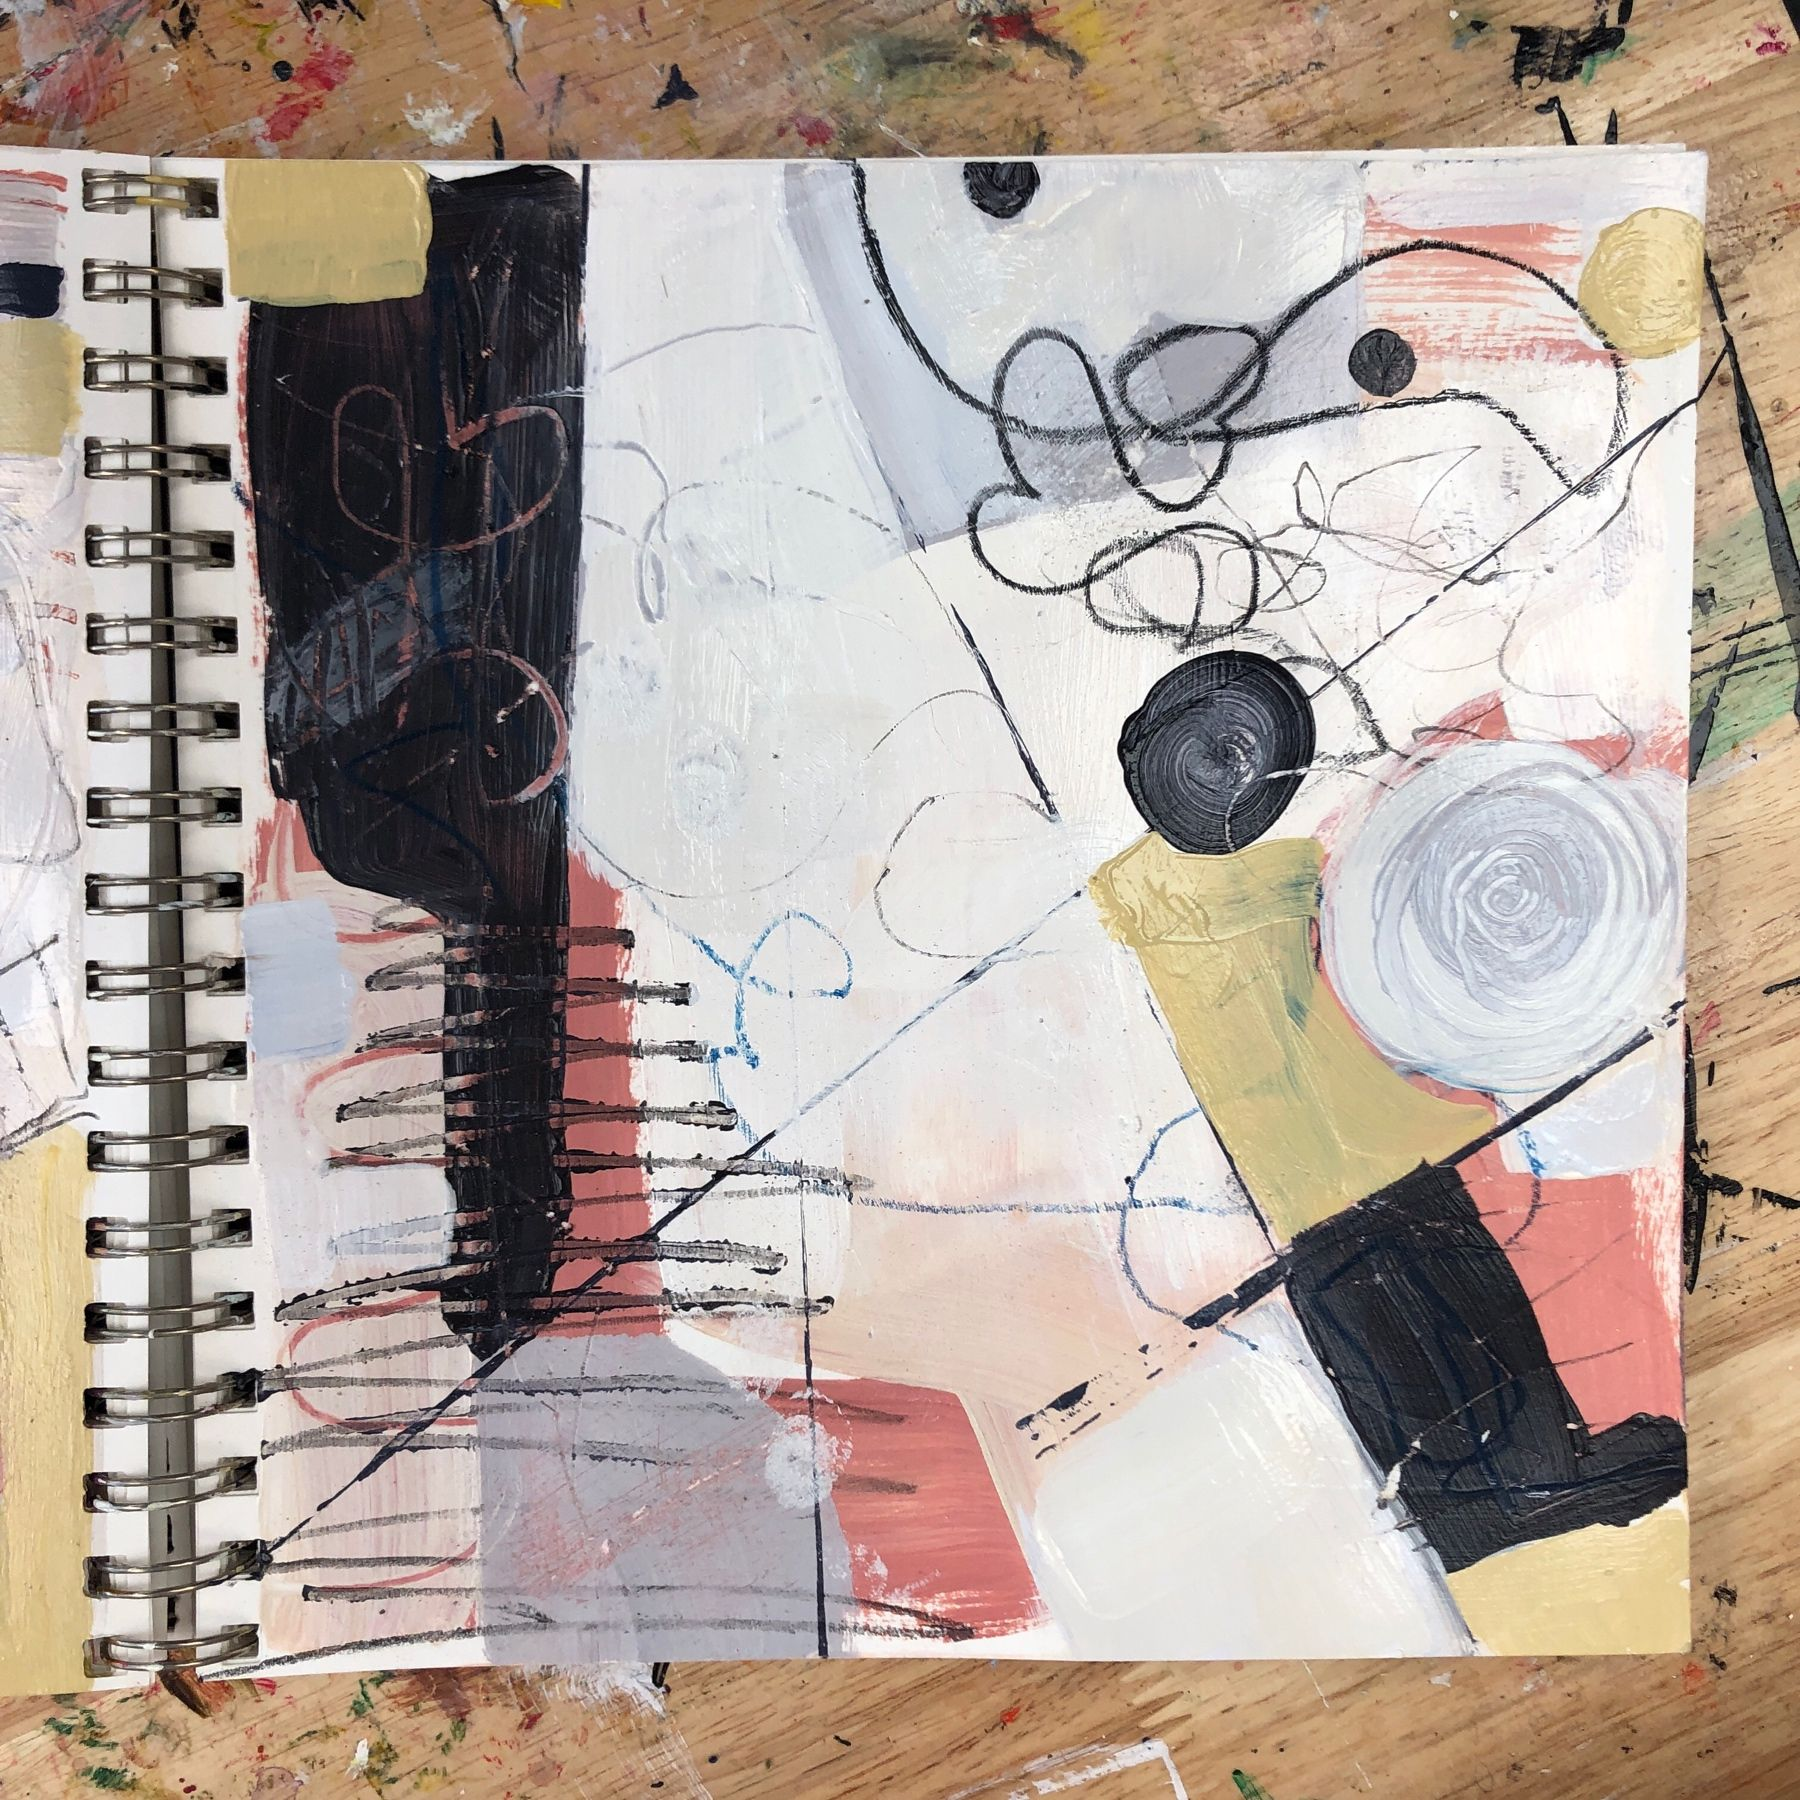 Sketchbook warmups! This is one of the pages that I worked on this morning using a limited palette and colours that I wouldn't normally choose. It took some loud music to get my juju onto the page today! What do you do to get ready to work? #trusttheprocess #yycartist #sketchbookwarmup #sketchbookpainting #sketchbook #sketchbookart #sketch #drawing #illustration #art #instaart #draw #artist #pencil #creative #artsy #artoftheday #instaartist #pen #doodle #paper #sketching #artwork #ink